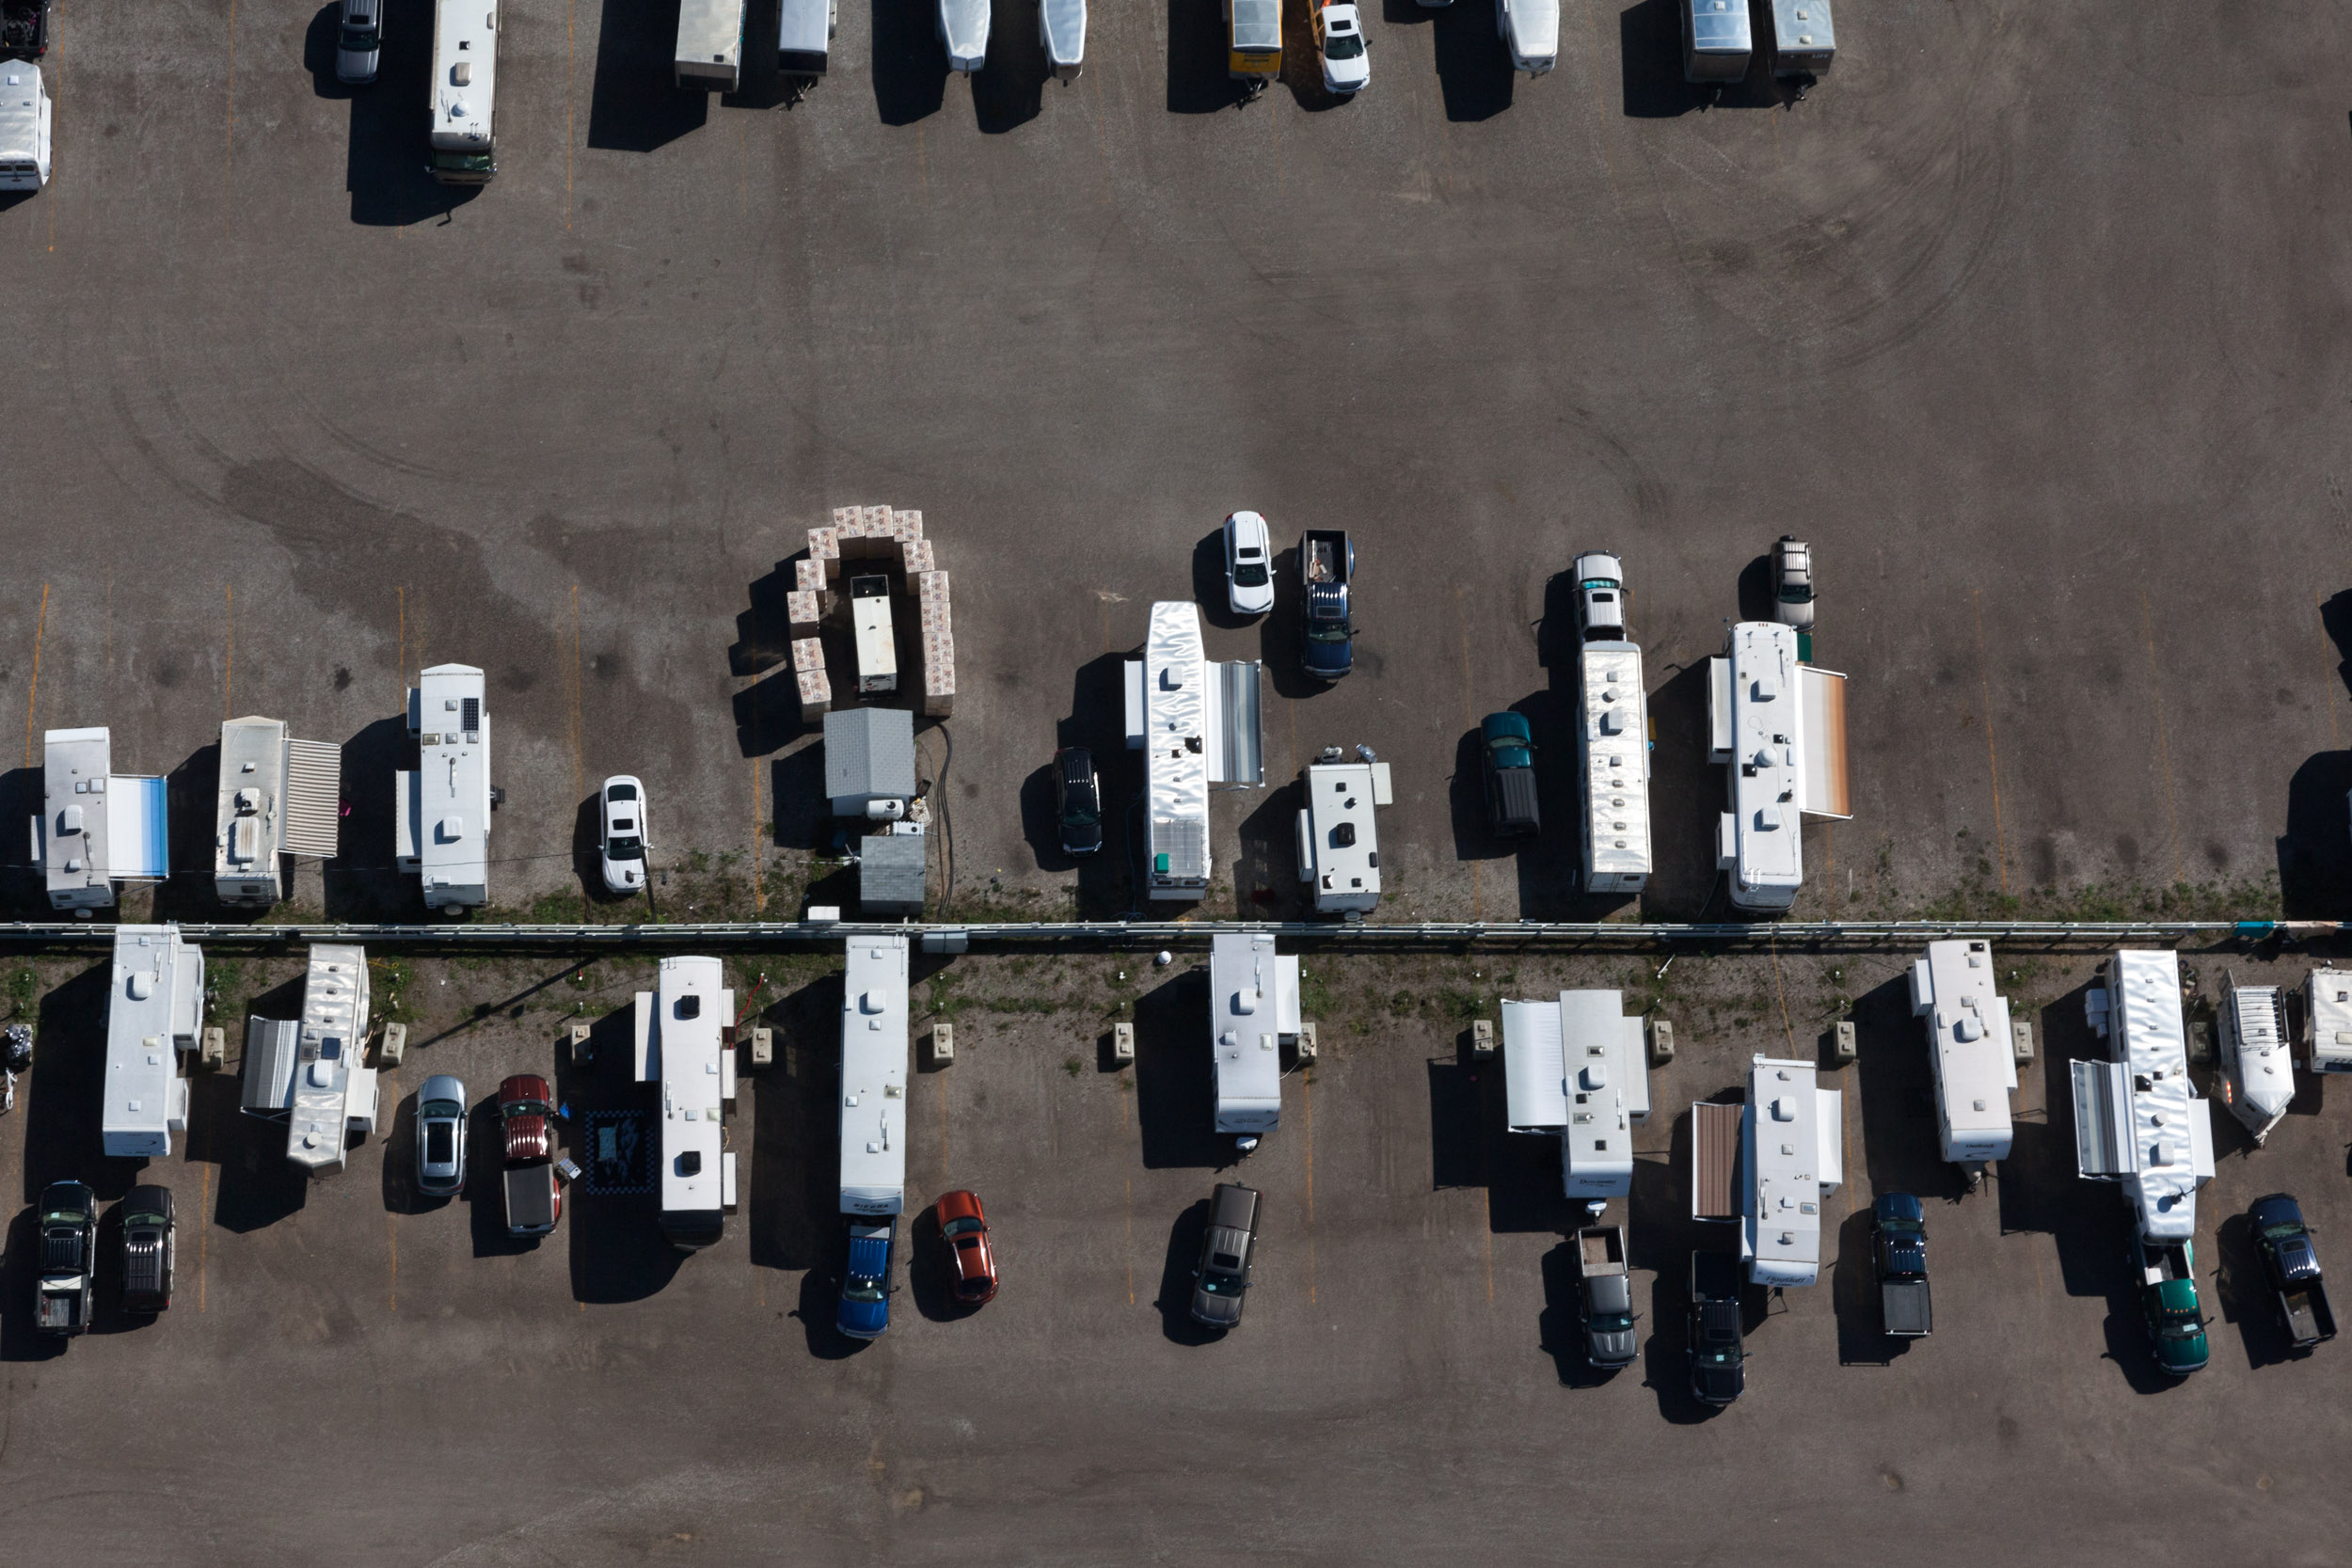 An aerial view of the Horses van parking lot at Spruce Meadows.